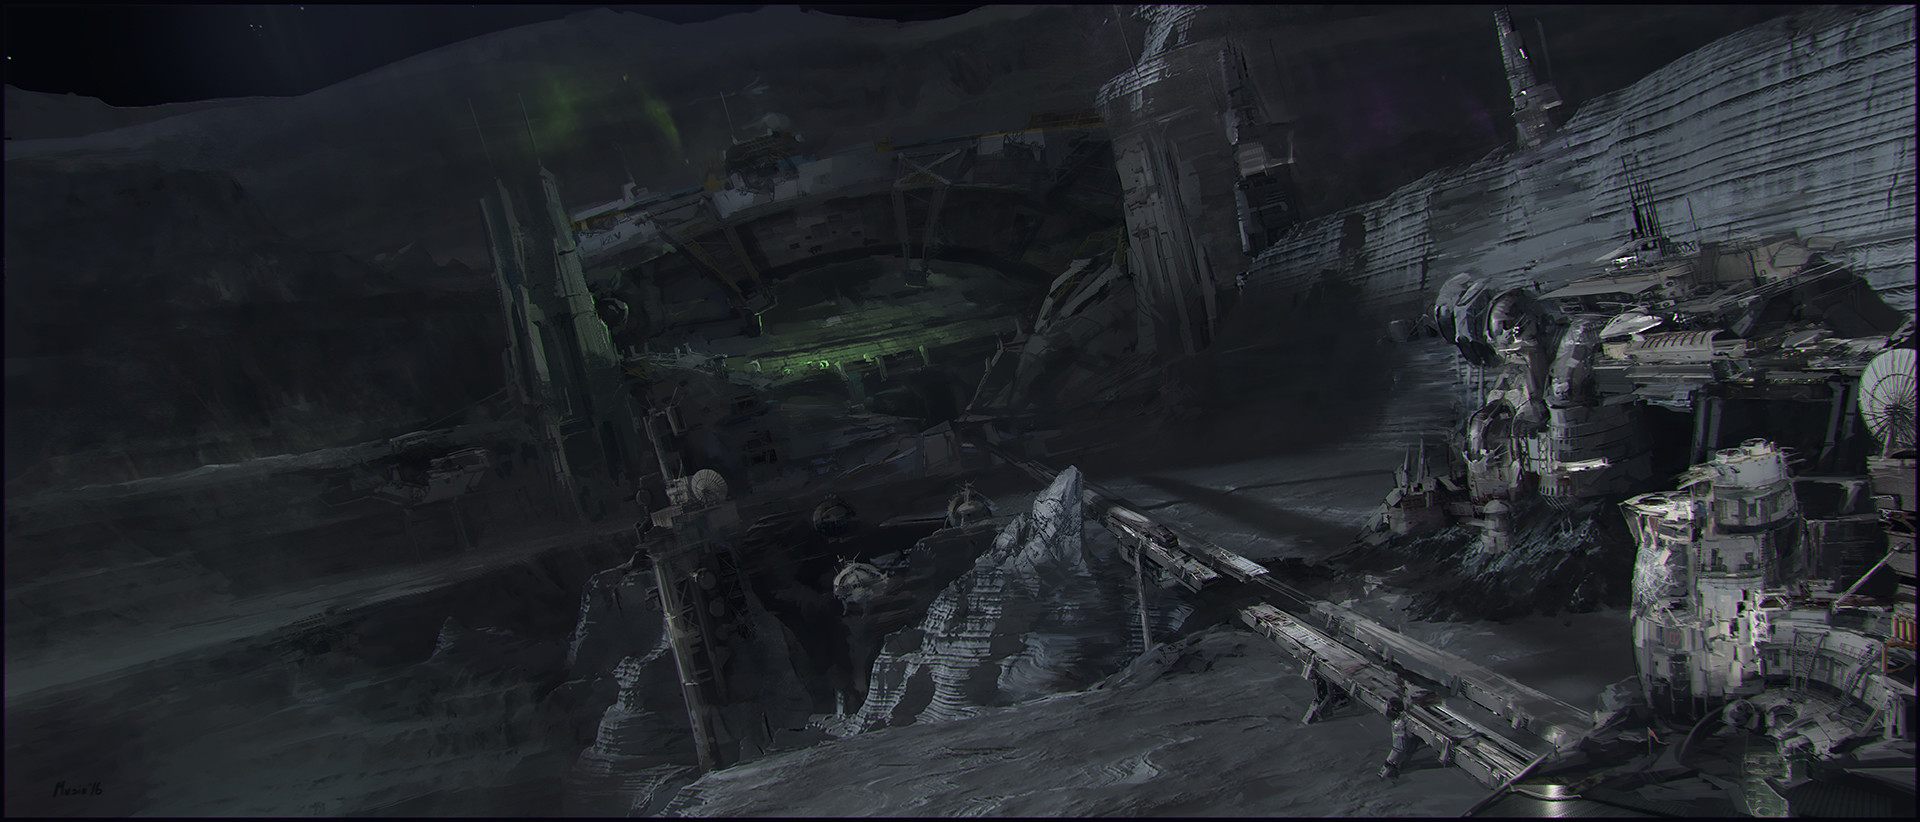 Sergey musin abandoned planet environment concept